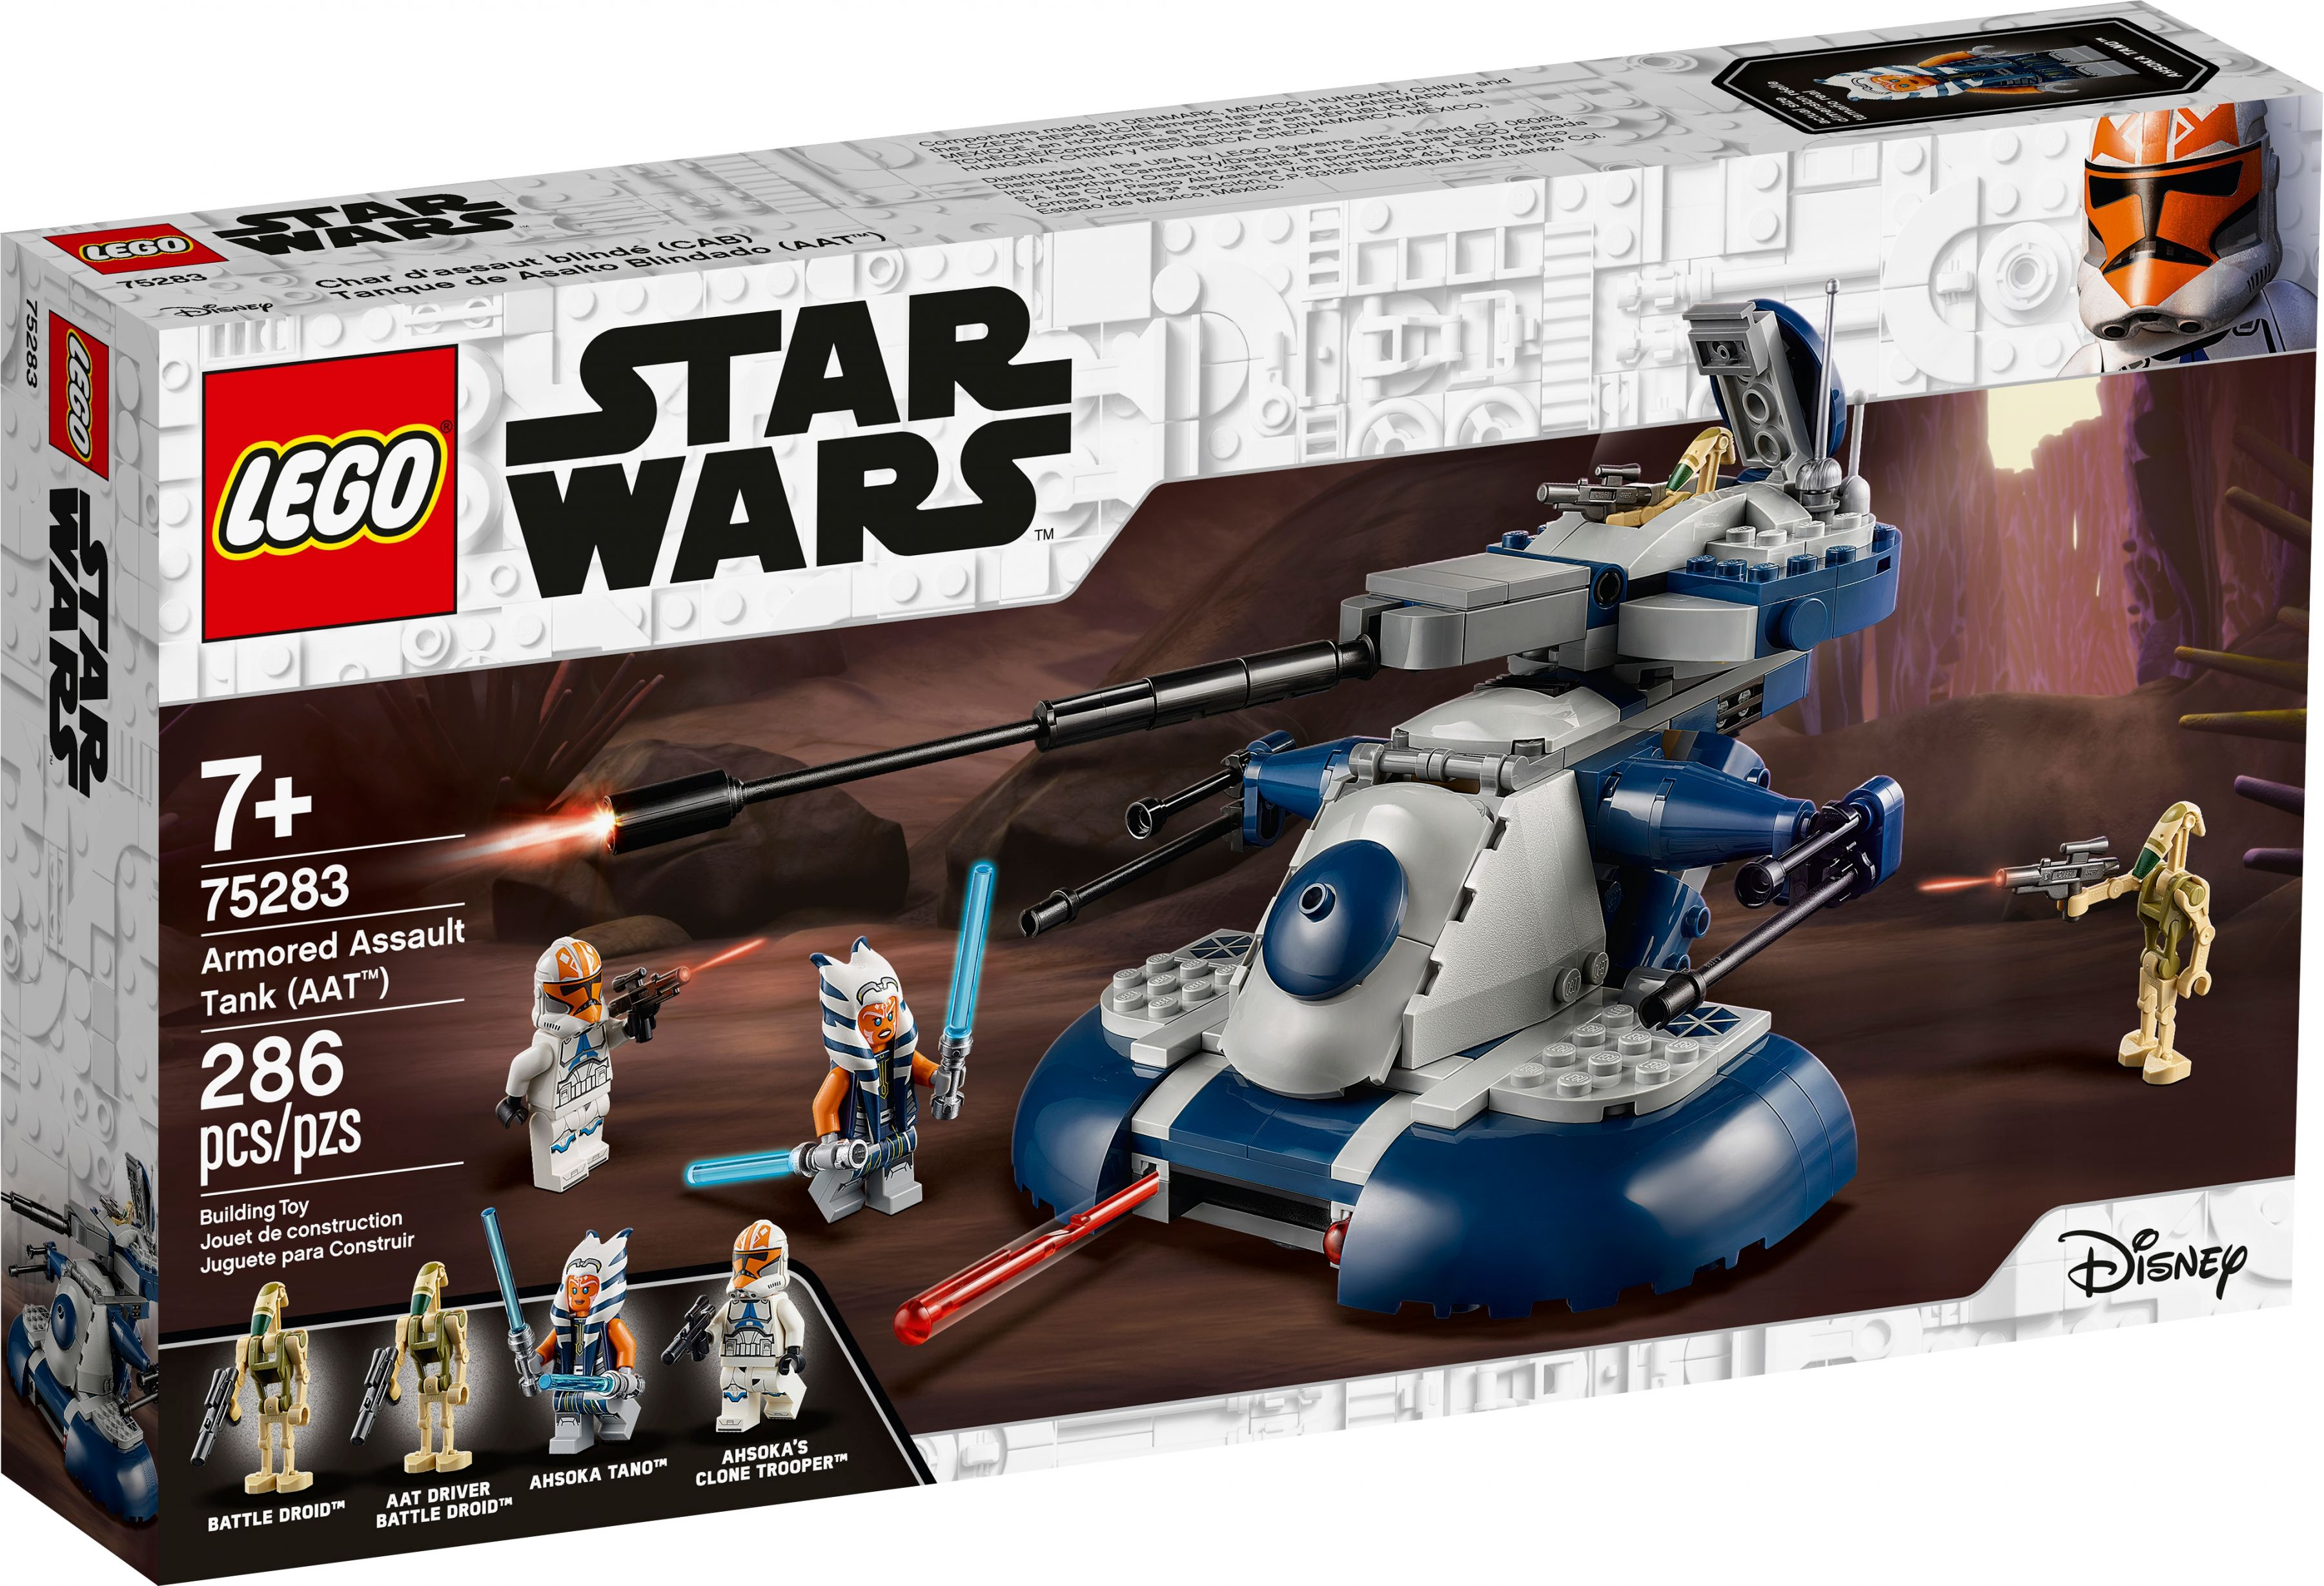 LEGO Star Wars 75283 Armored Assault Tank (AAT™) LEGO_75283_alt1.jpg